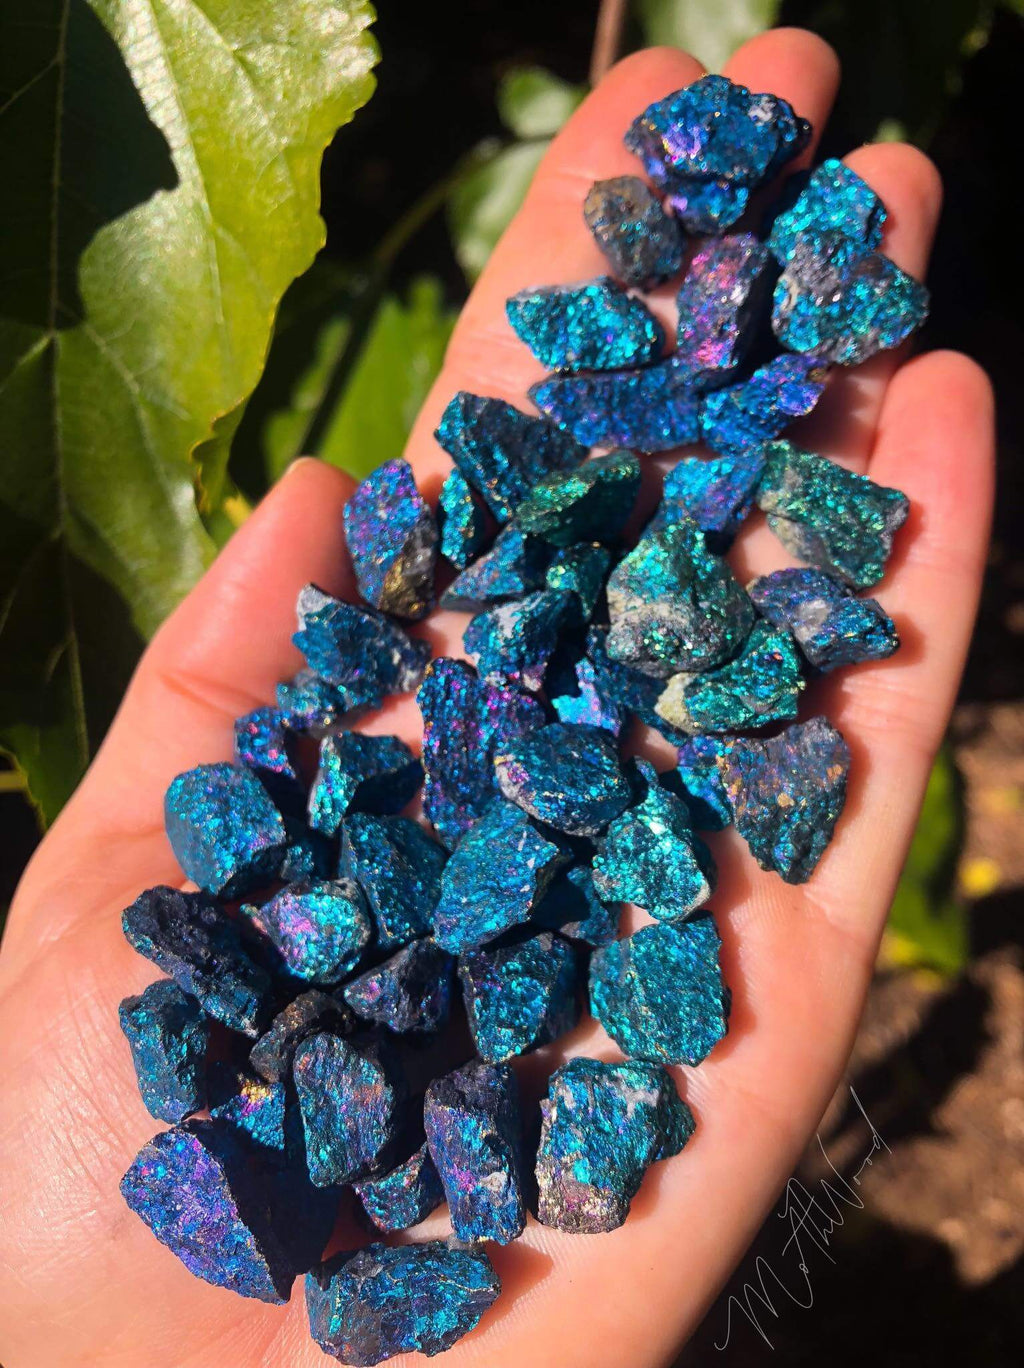 Peacock Ore / Bornite Crystals Pack 100g